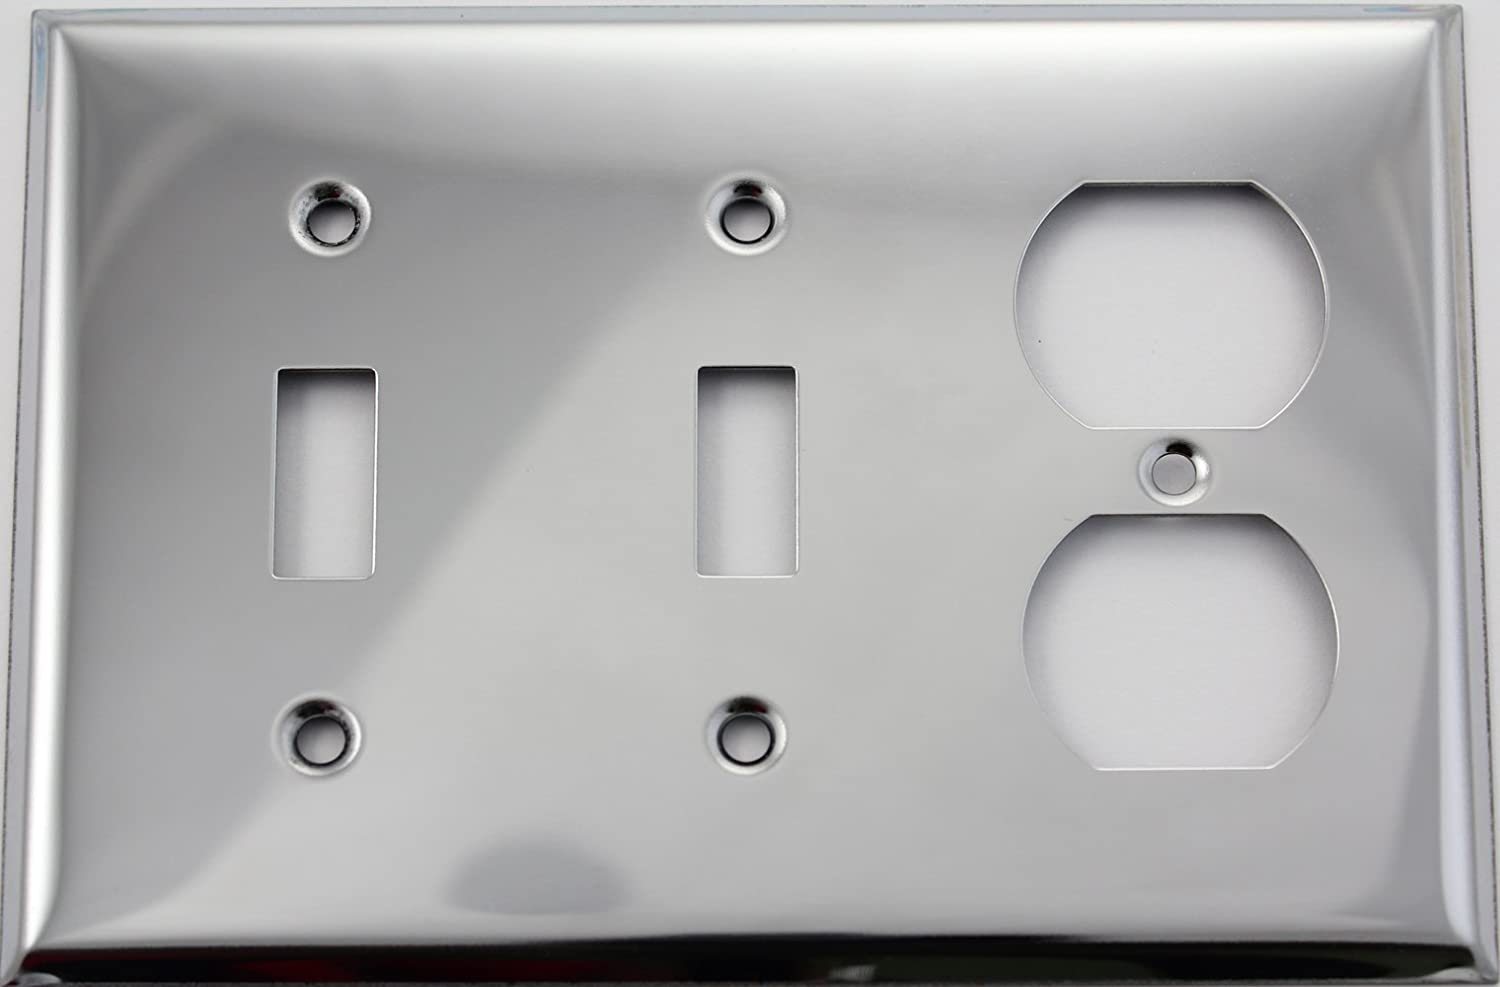 Stainless Steel Oversized Leviton 84121-40 3-Gang 2-Toggle 1-Duplex Device Combination Wallplate Device Mount